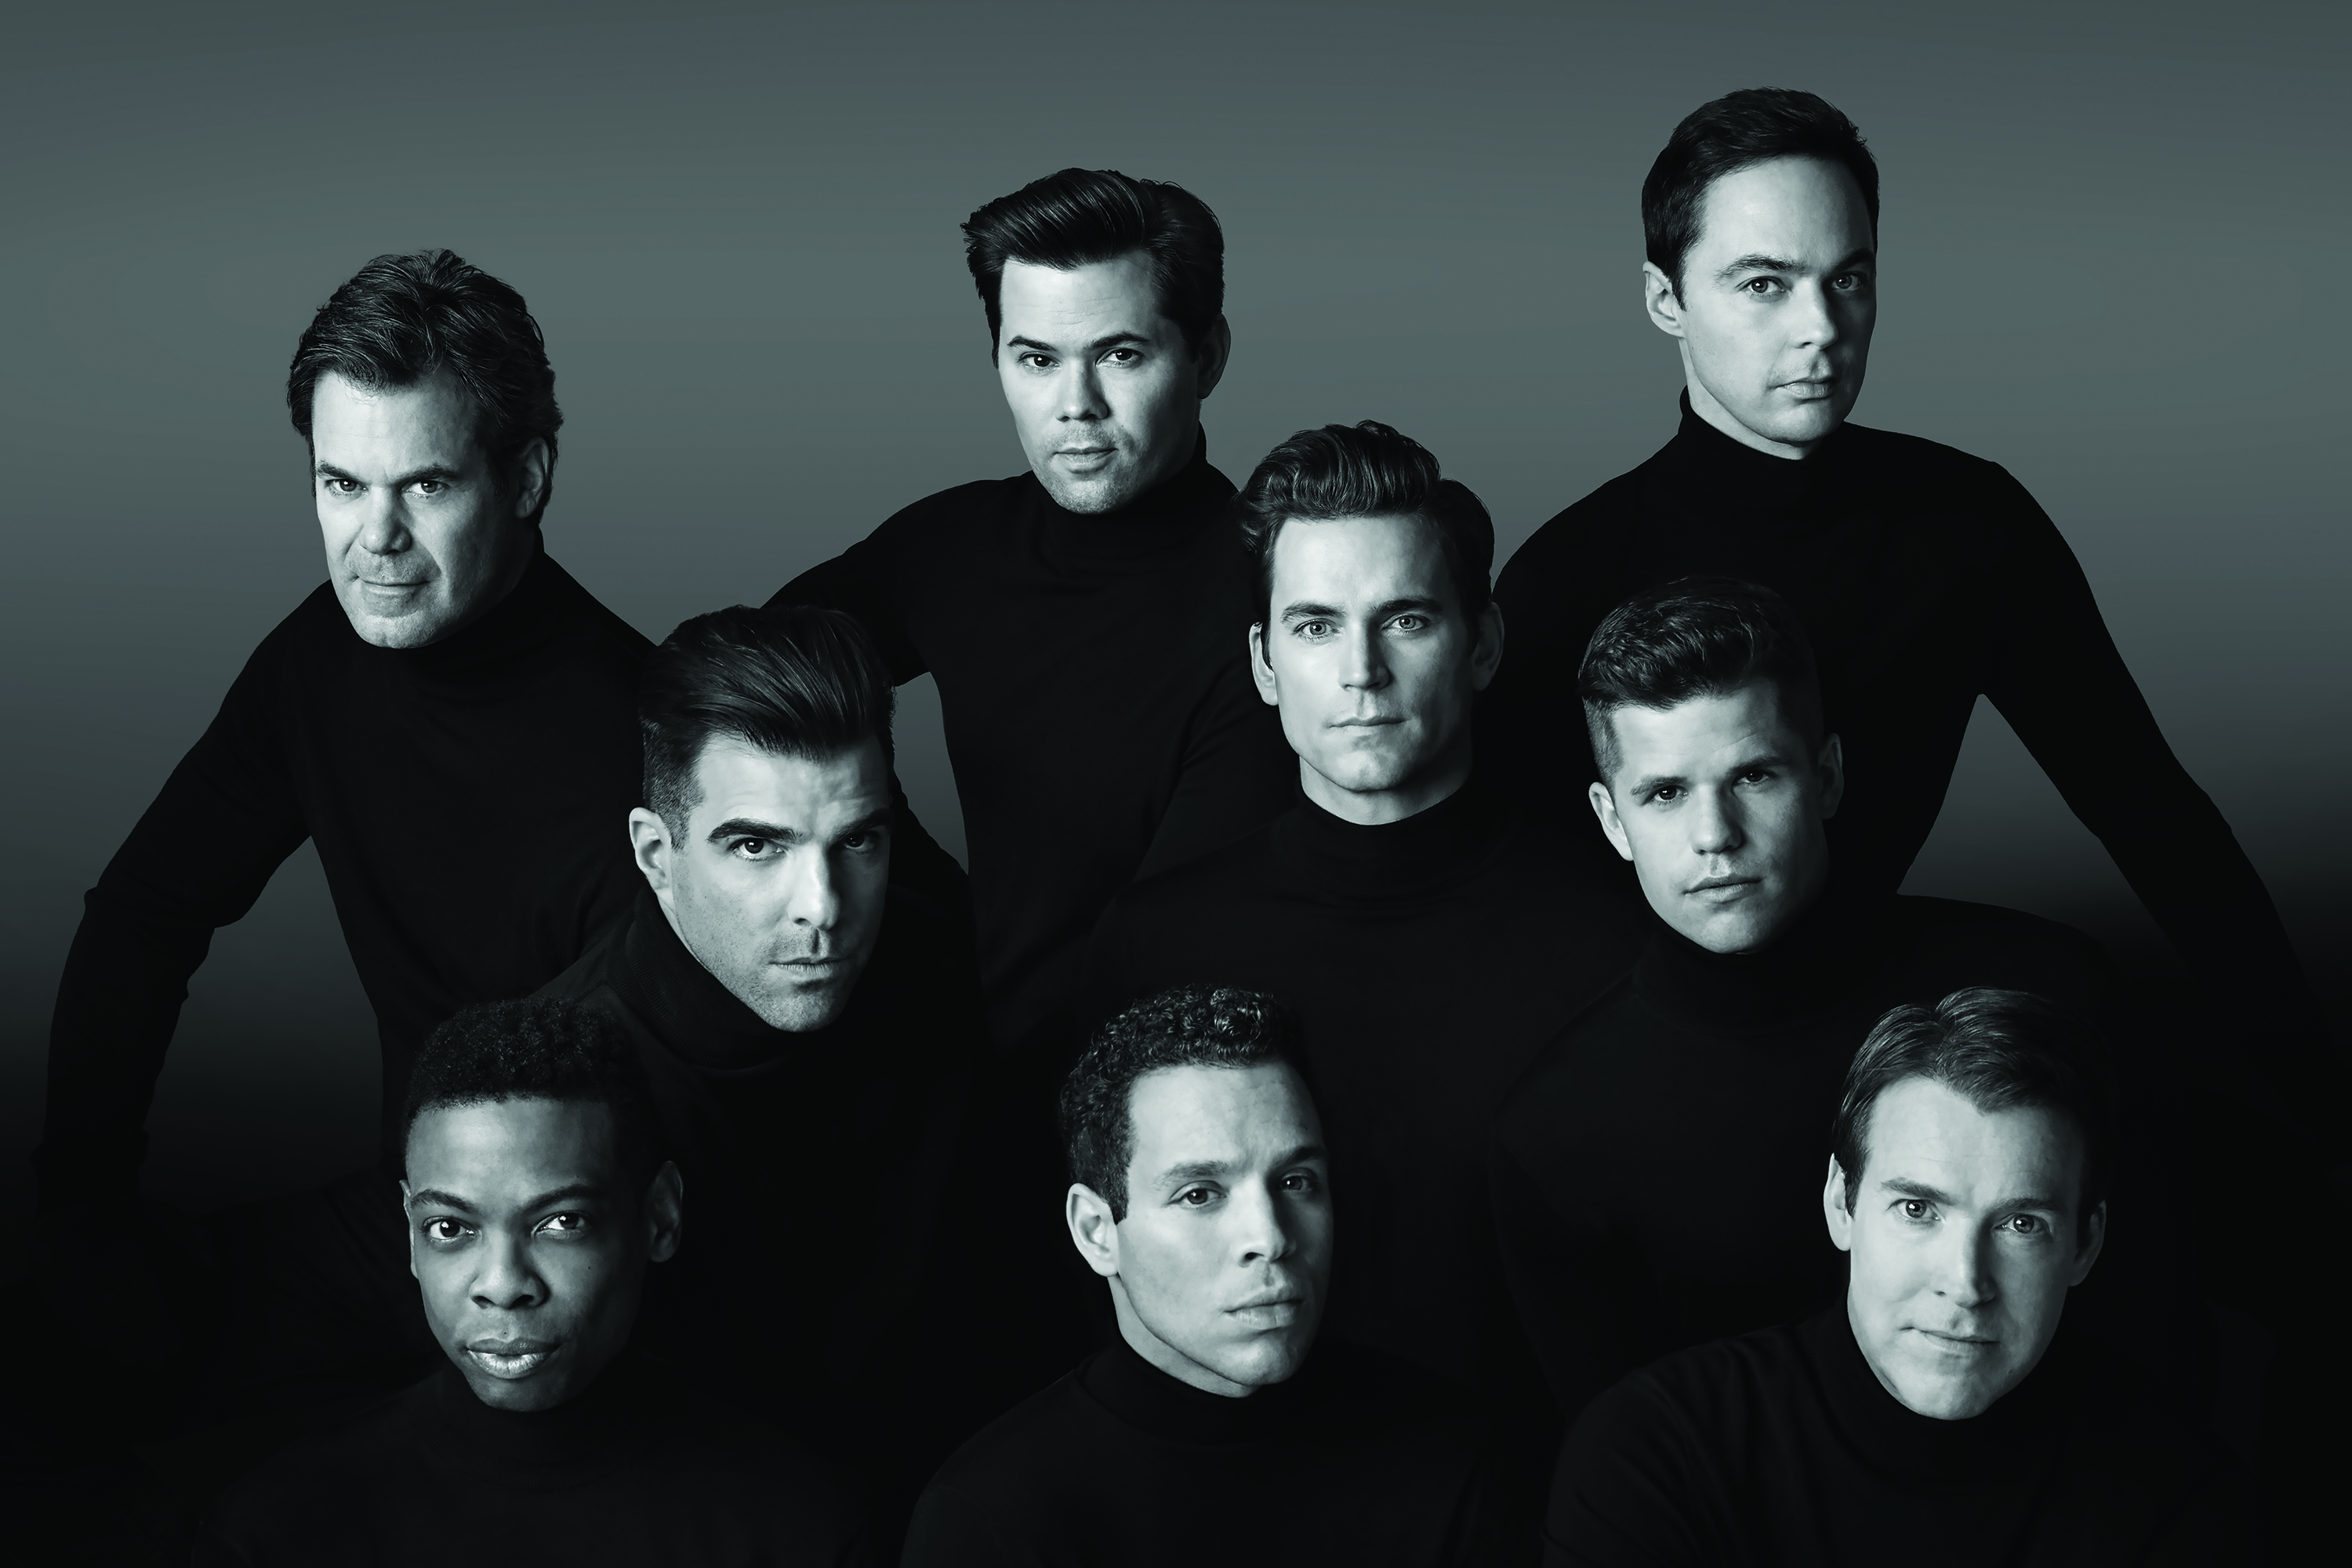 Meet the all-star, all-gay cast of Broadway's upcoming revival of The Boys in the Band